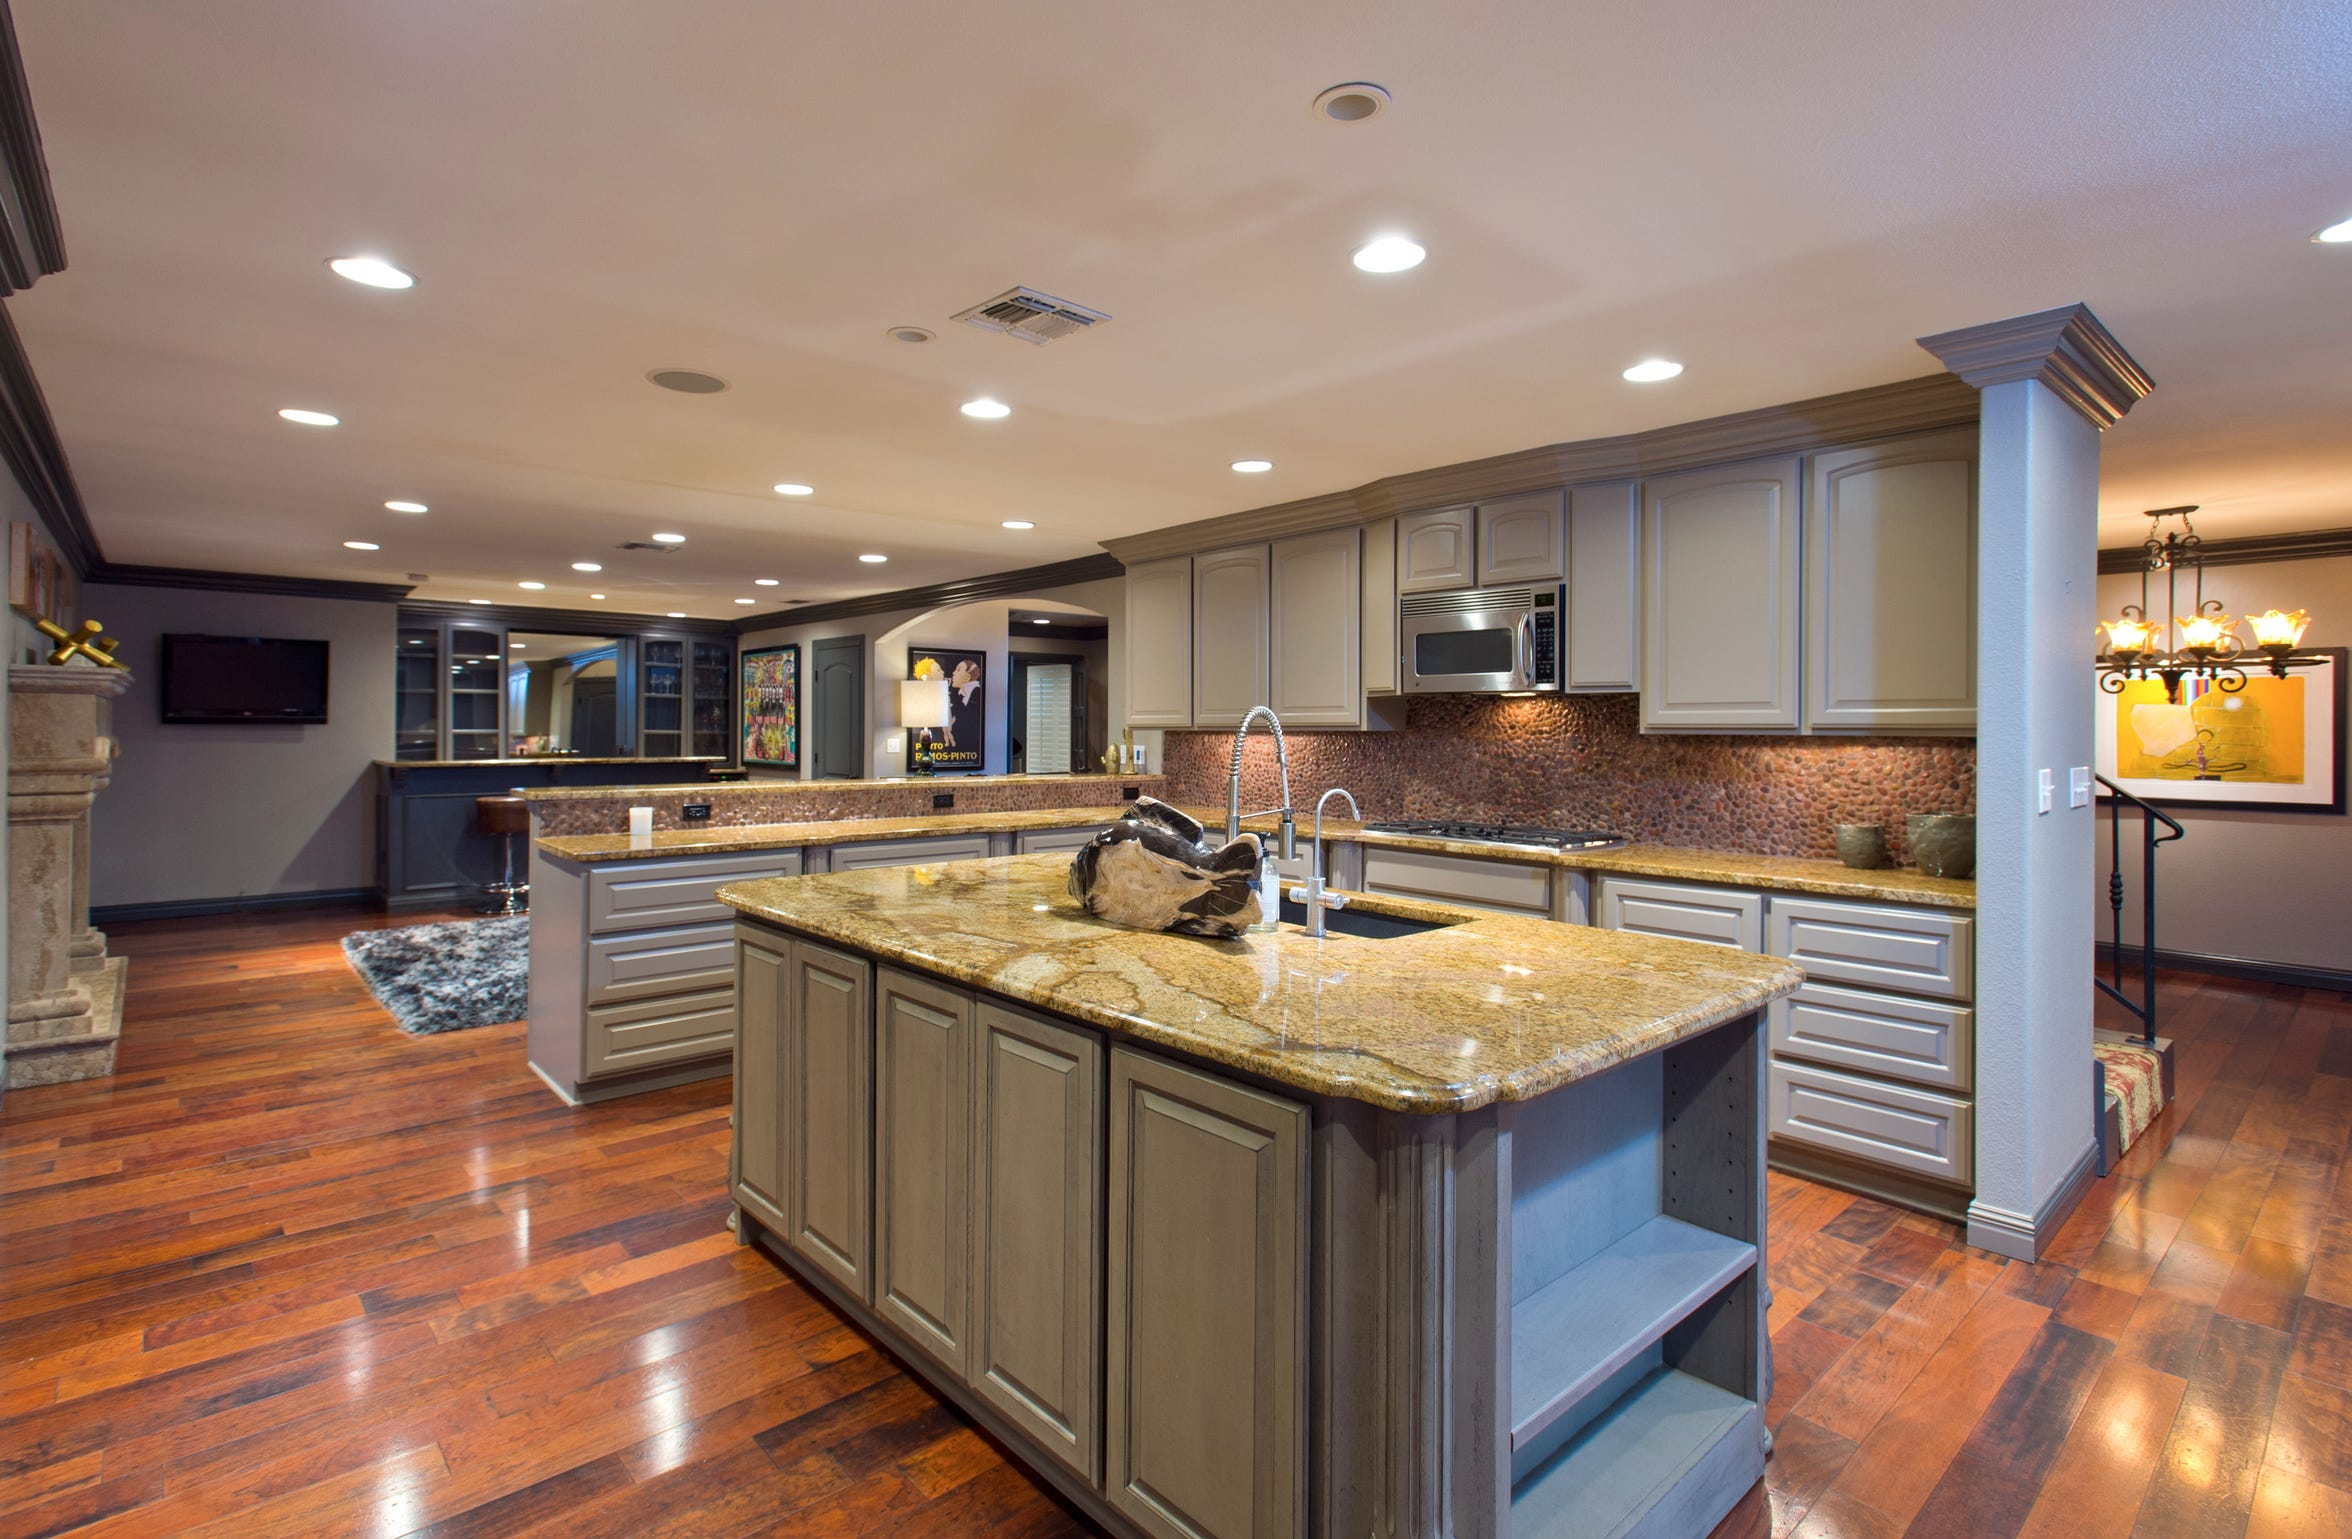 The kitchen is nothing short of amazing with wood flooring, beautiful cabinetry, a granite topped island and counters with a unique pebble back splash.